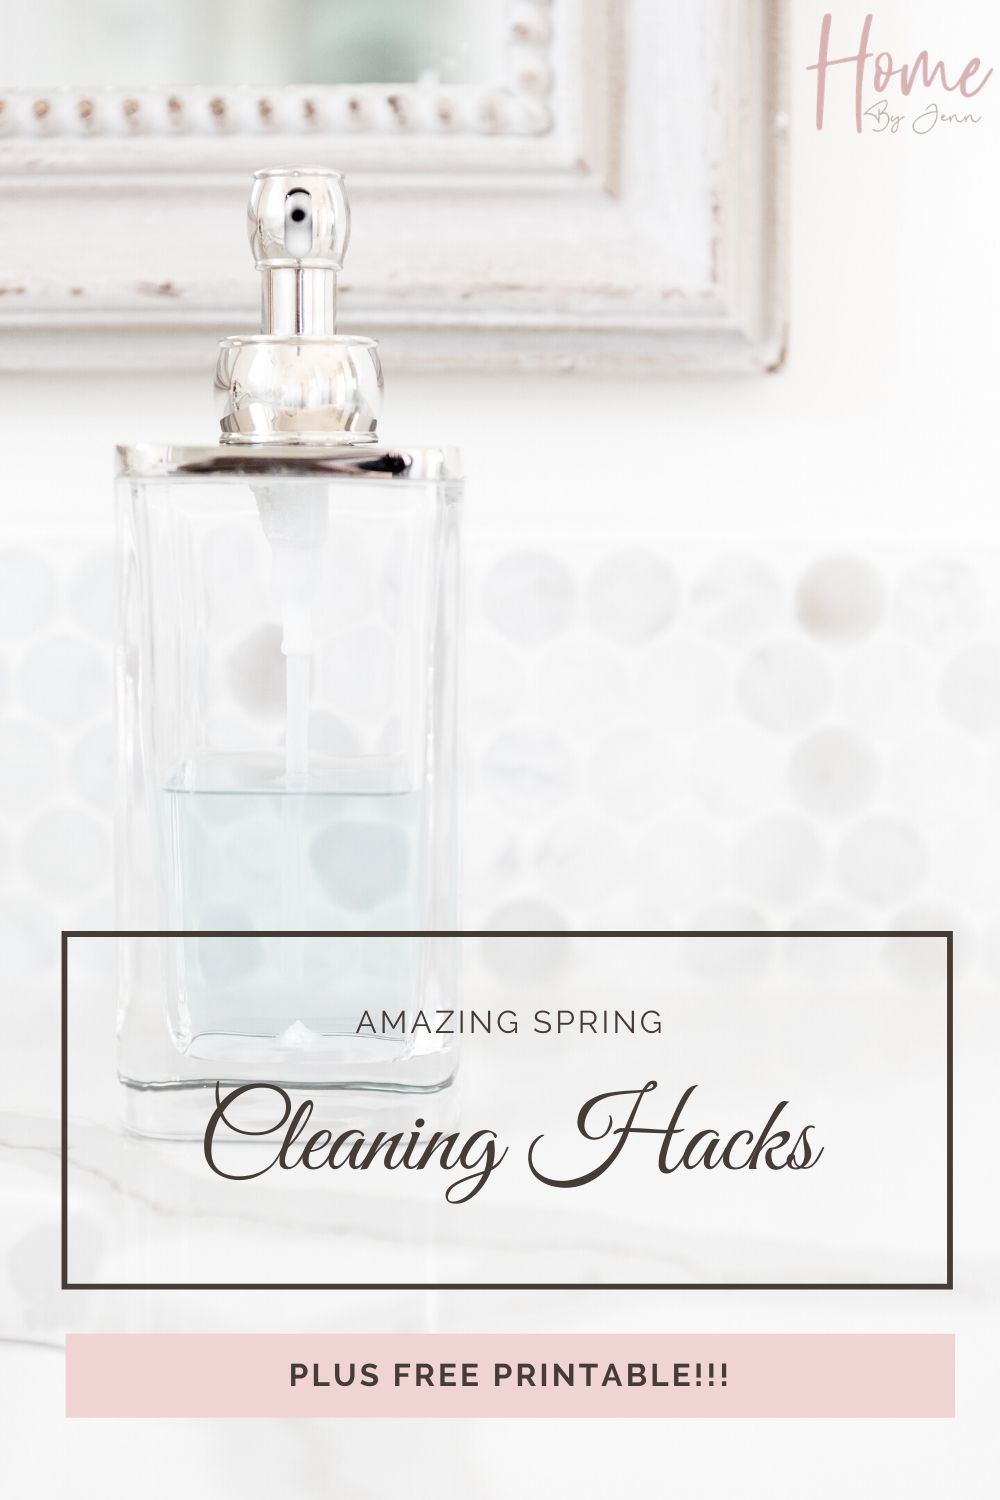 Use these spring cleaning hacks to help you get through the spring cleaning this year. You'll be surprised how simple it is when you use these cleaning hacks. Free spring cleaning printable to help you too!